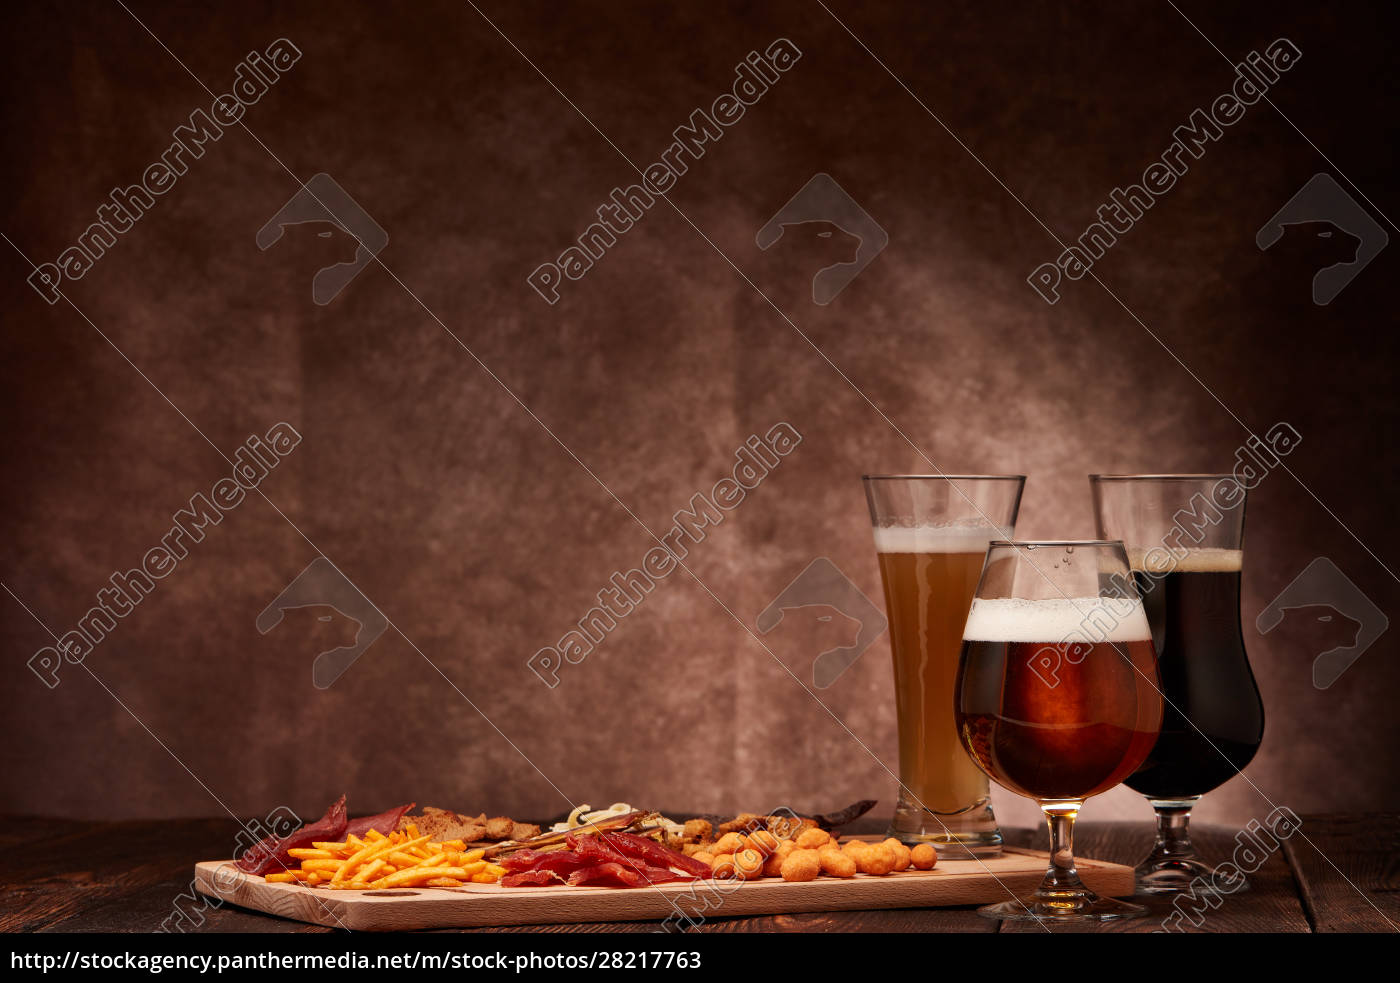 beer, and, snacks - 28217763